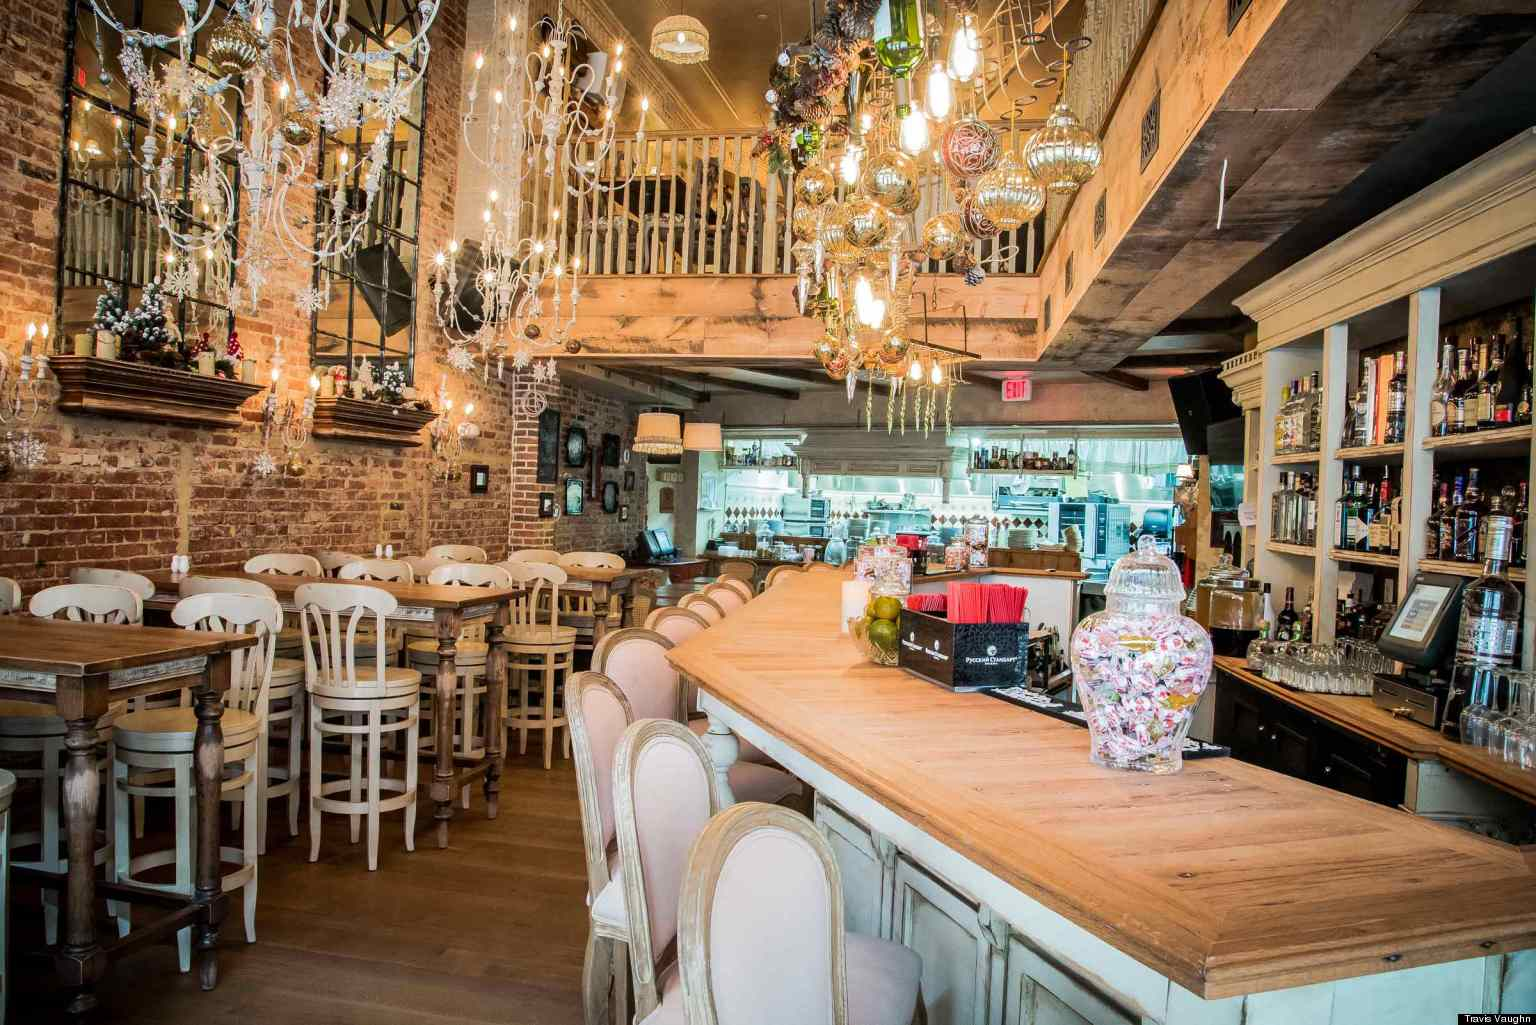 Mari vanna d c brings russia to dupont circle photos - Table restaurant washington dc ...